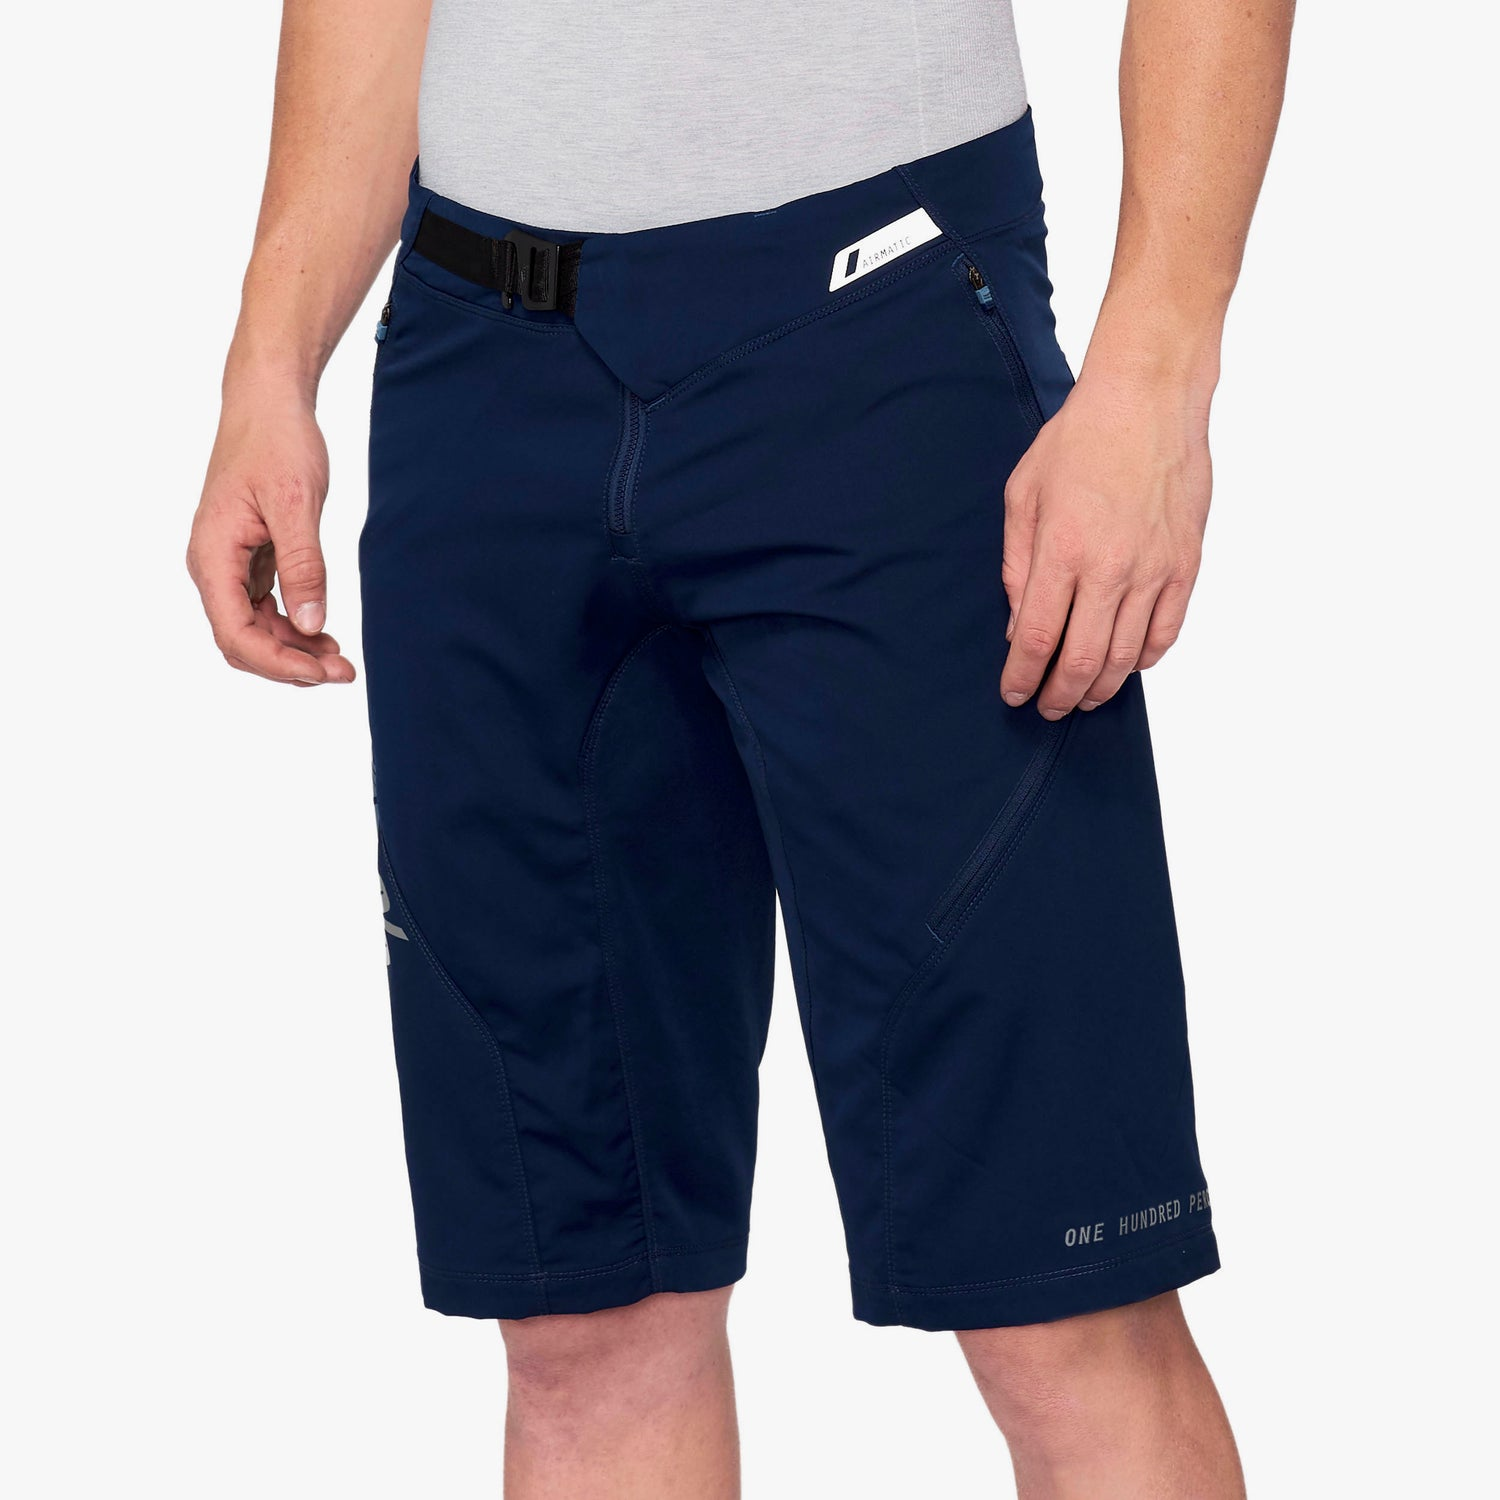 AIRMATIC Shorts - Navy